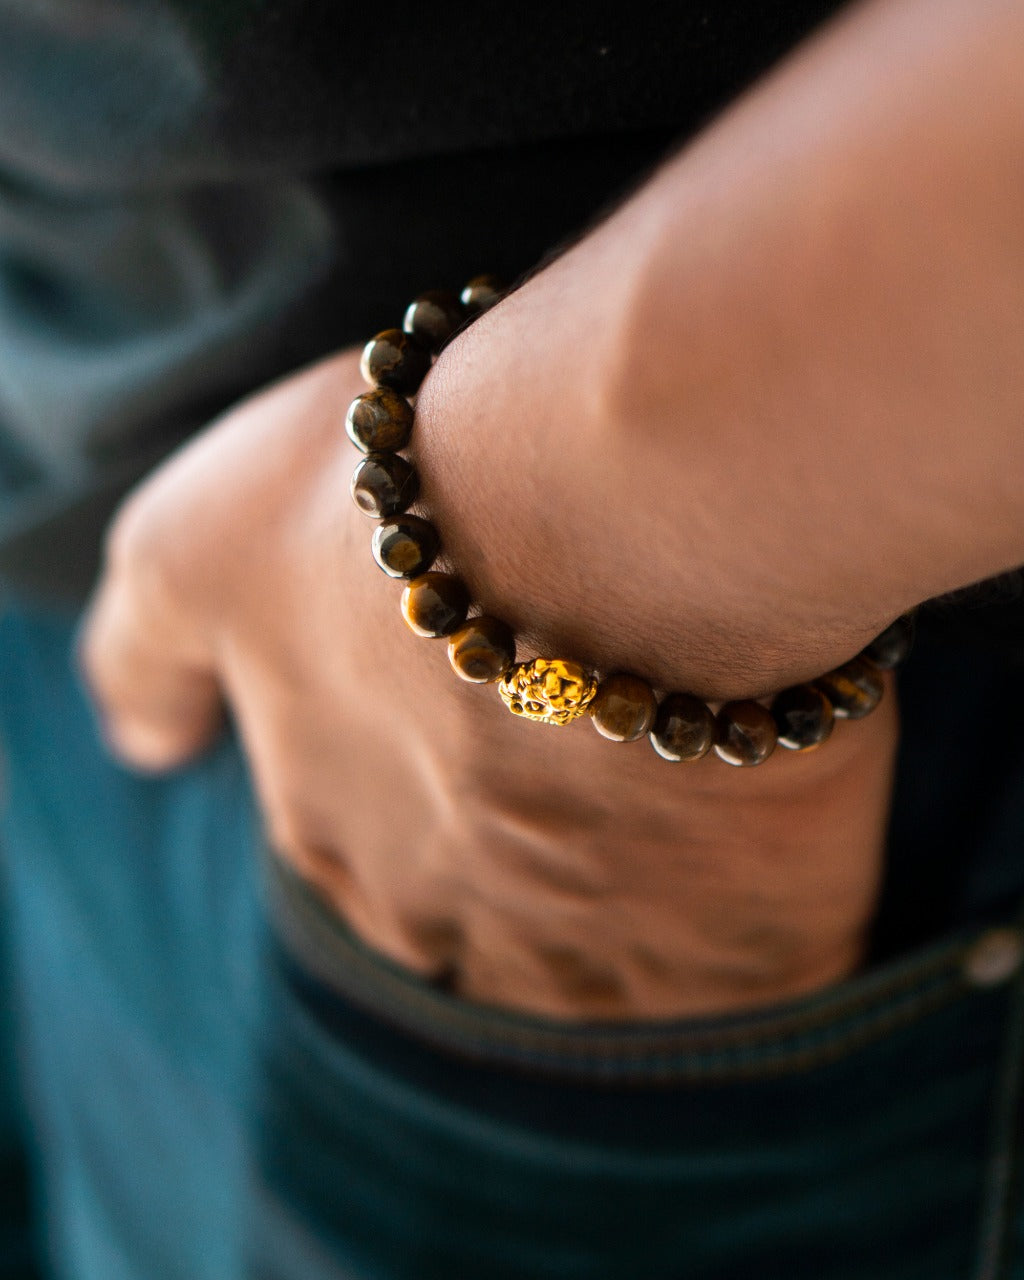 Premium Collection - Brown Tiger Eye with Gold Lion Head Bead Bracelet